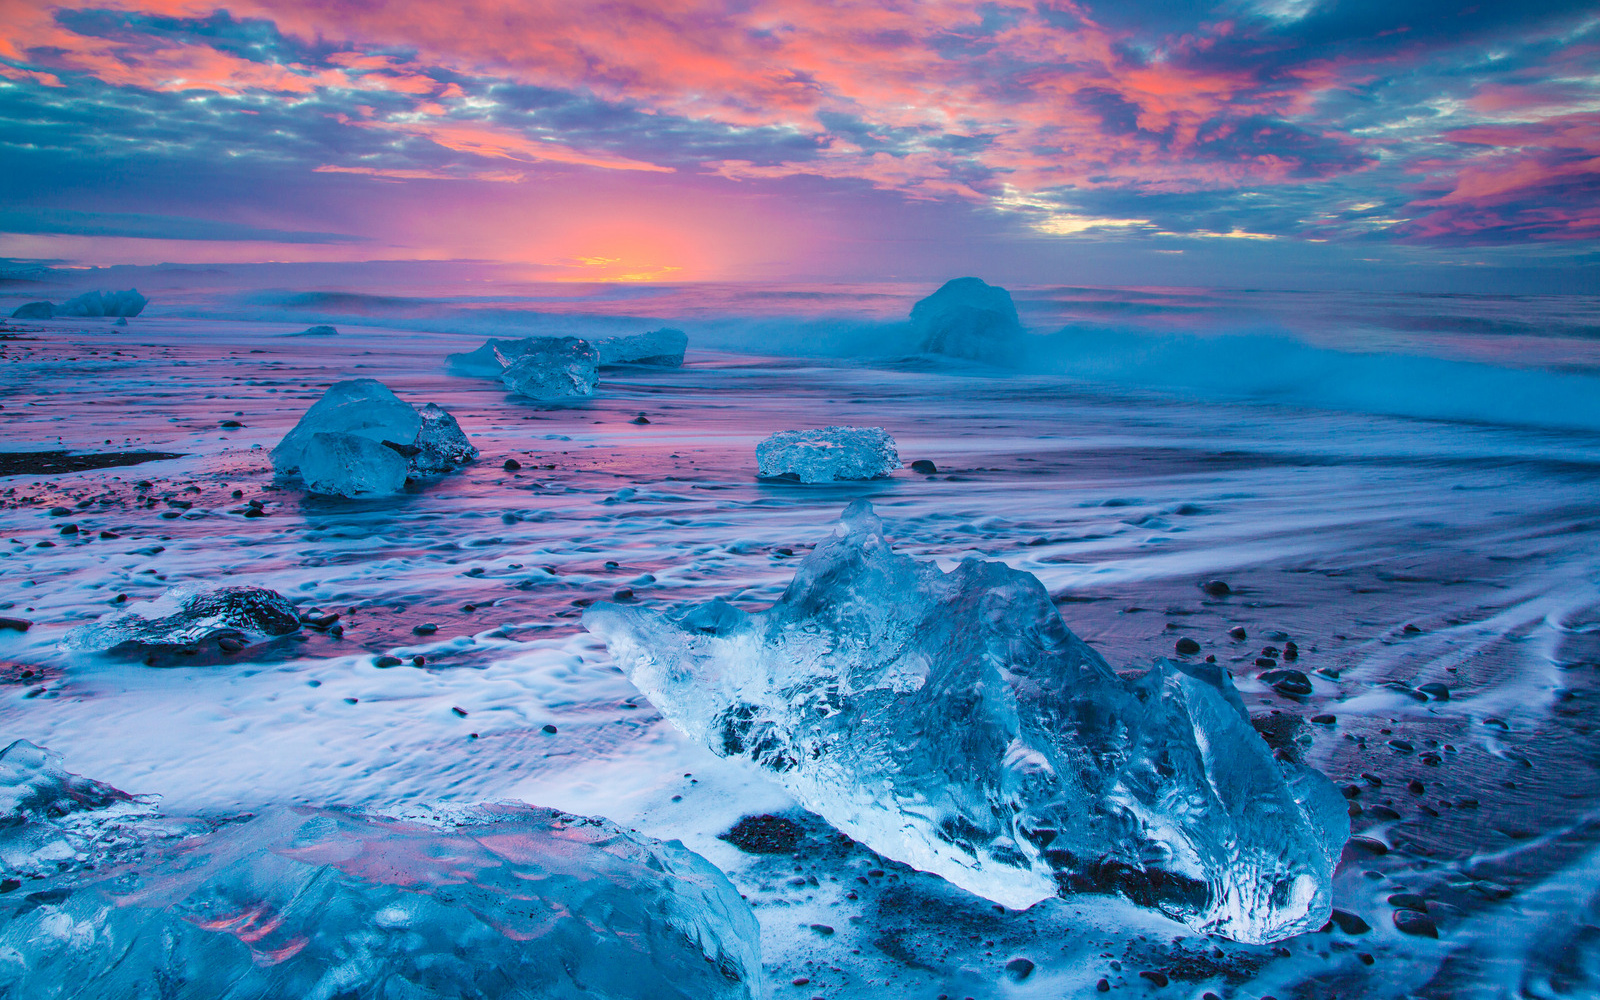 Iphone 5 Hd Wallpaper Nature Beach Sunset In Iceland 壁纸 And 背景 1600x1000 Id 719137